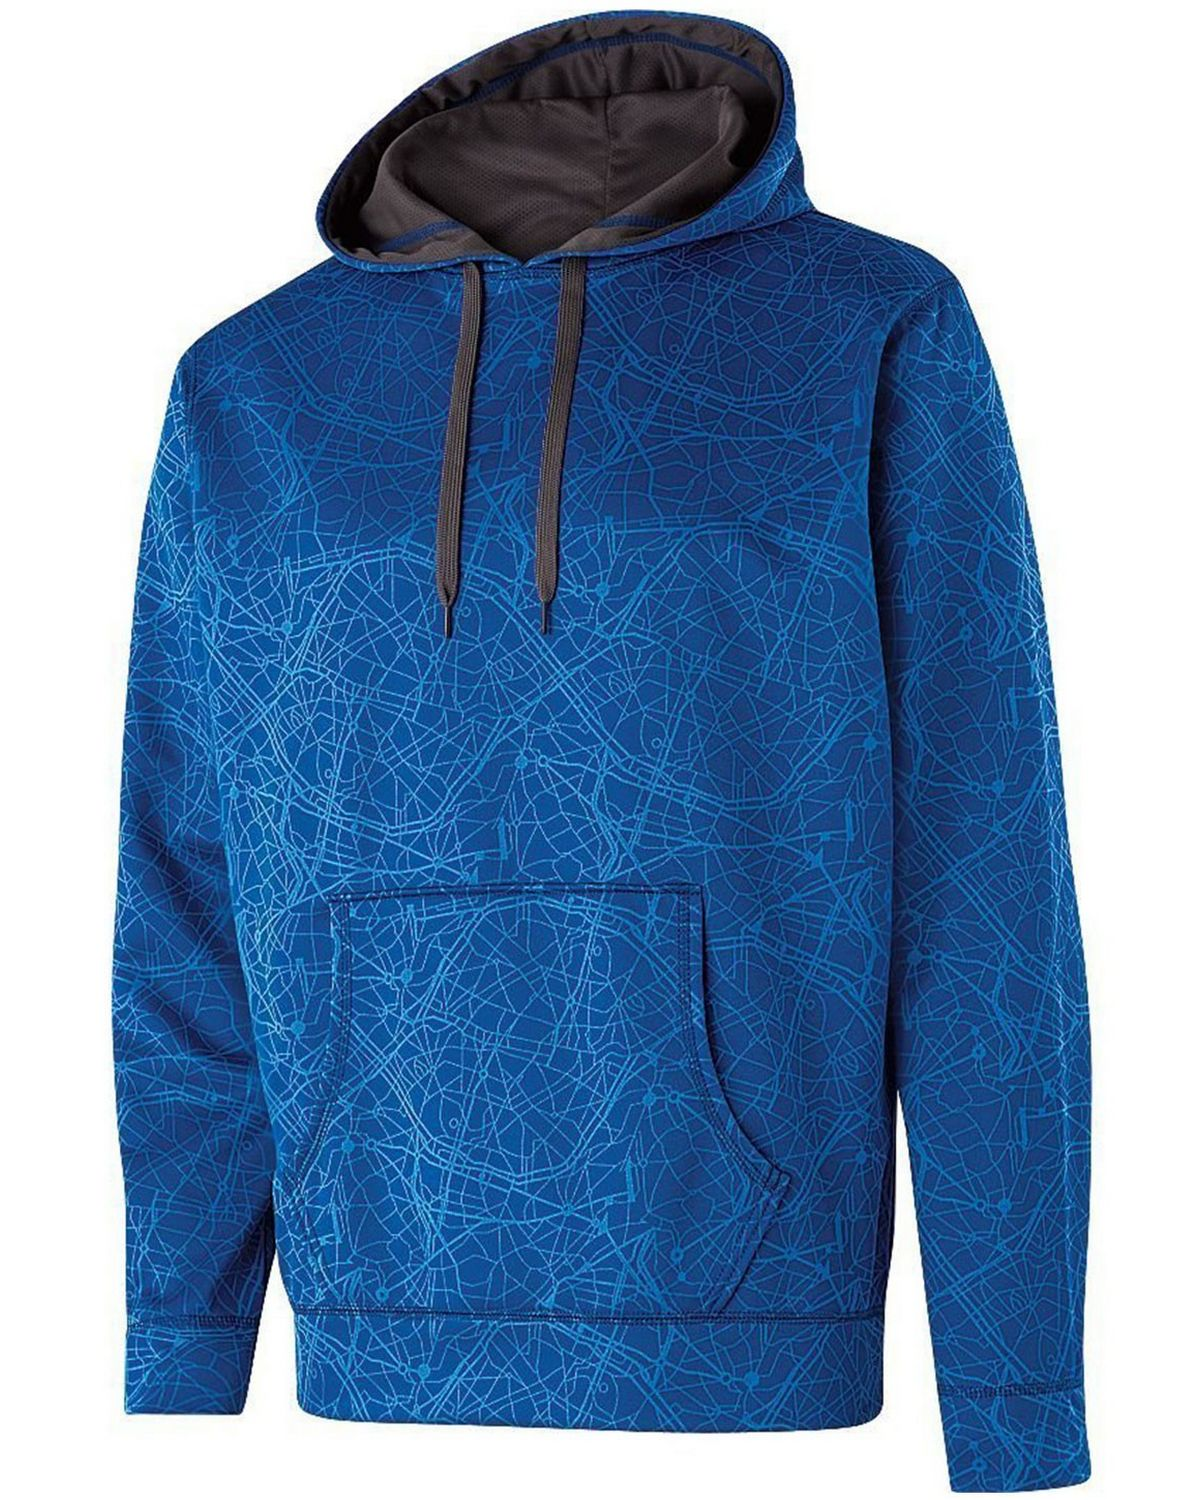 Holloway 222534 Adult Polyester Performance Hoodie - Royal - L 222534